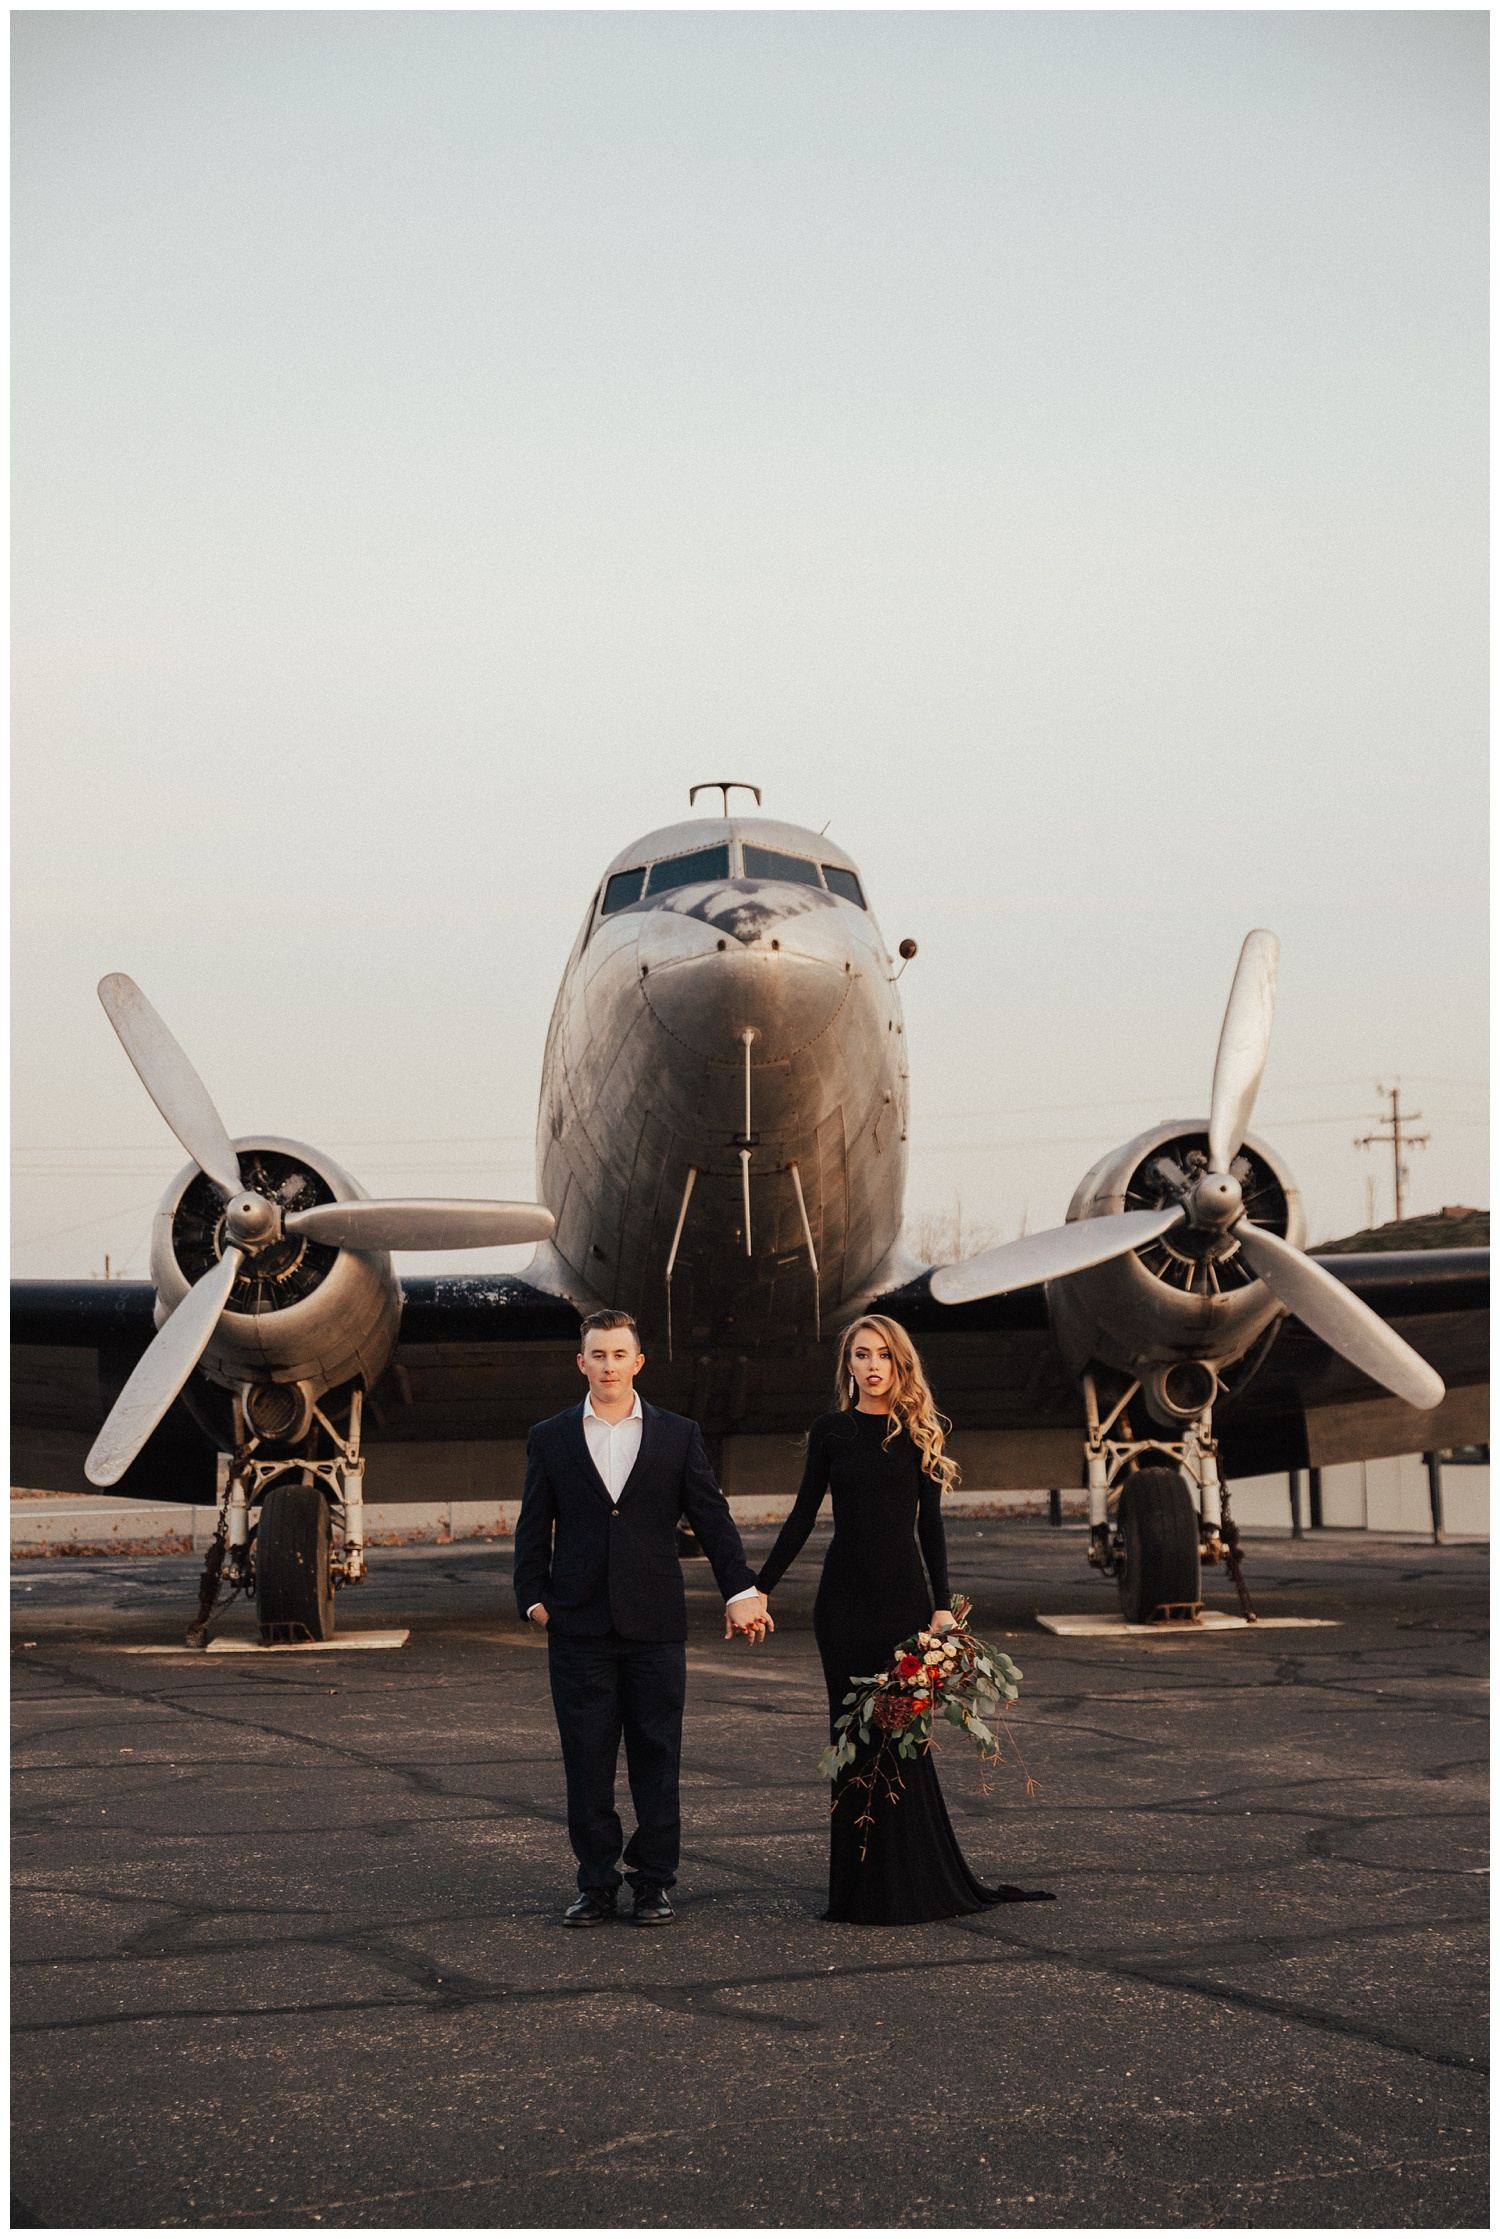 Travel Lovers Airport Engagement from Lisa Renault Photographie